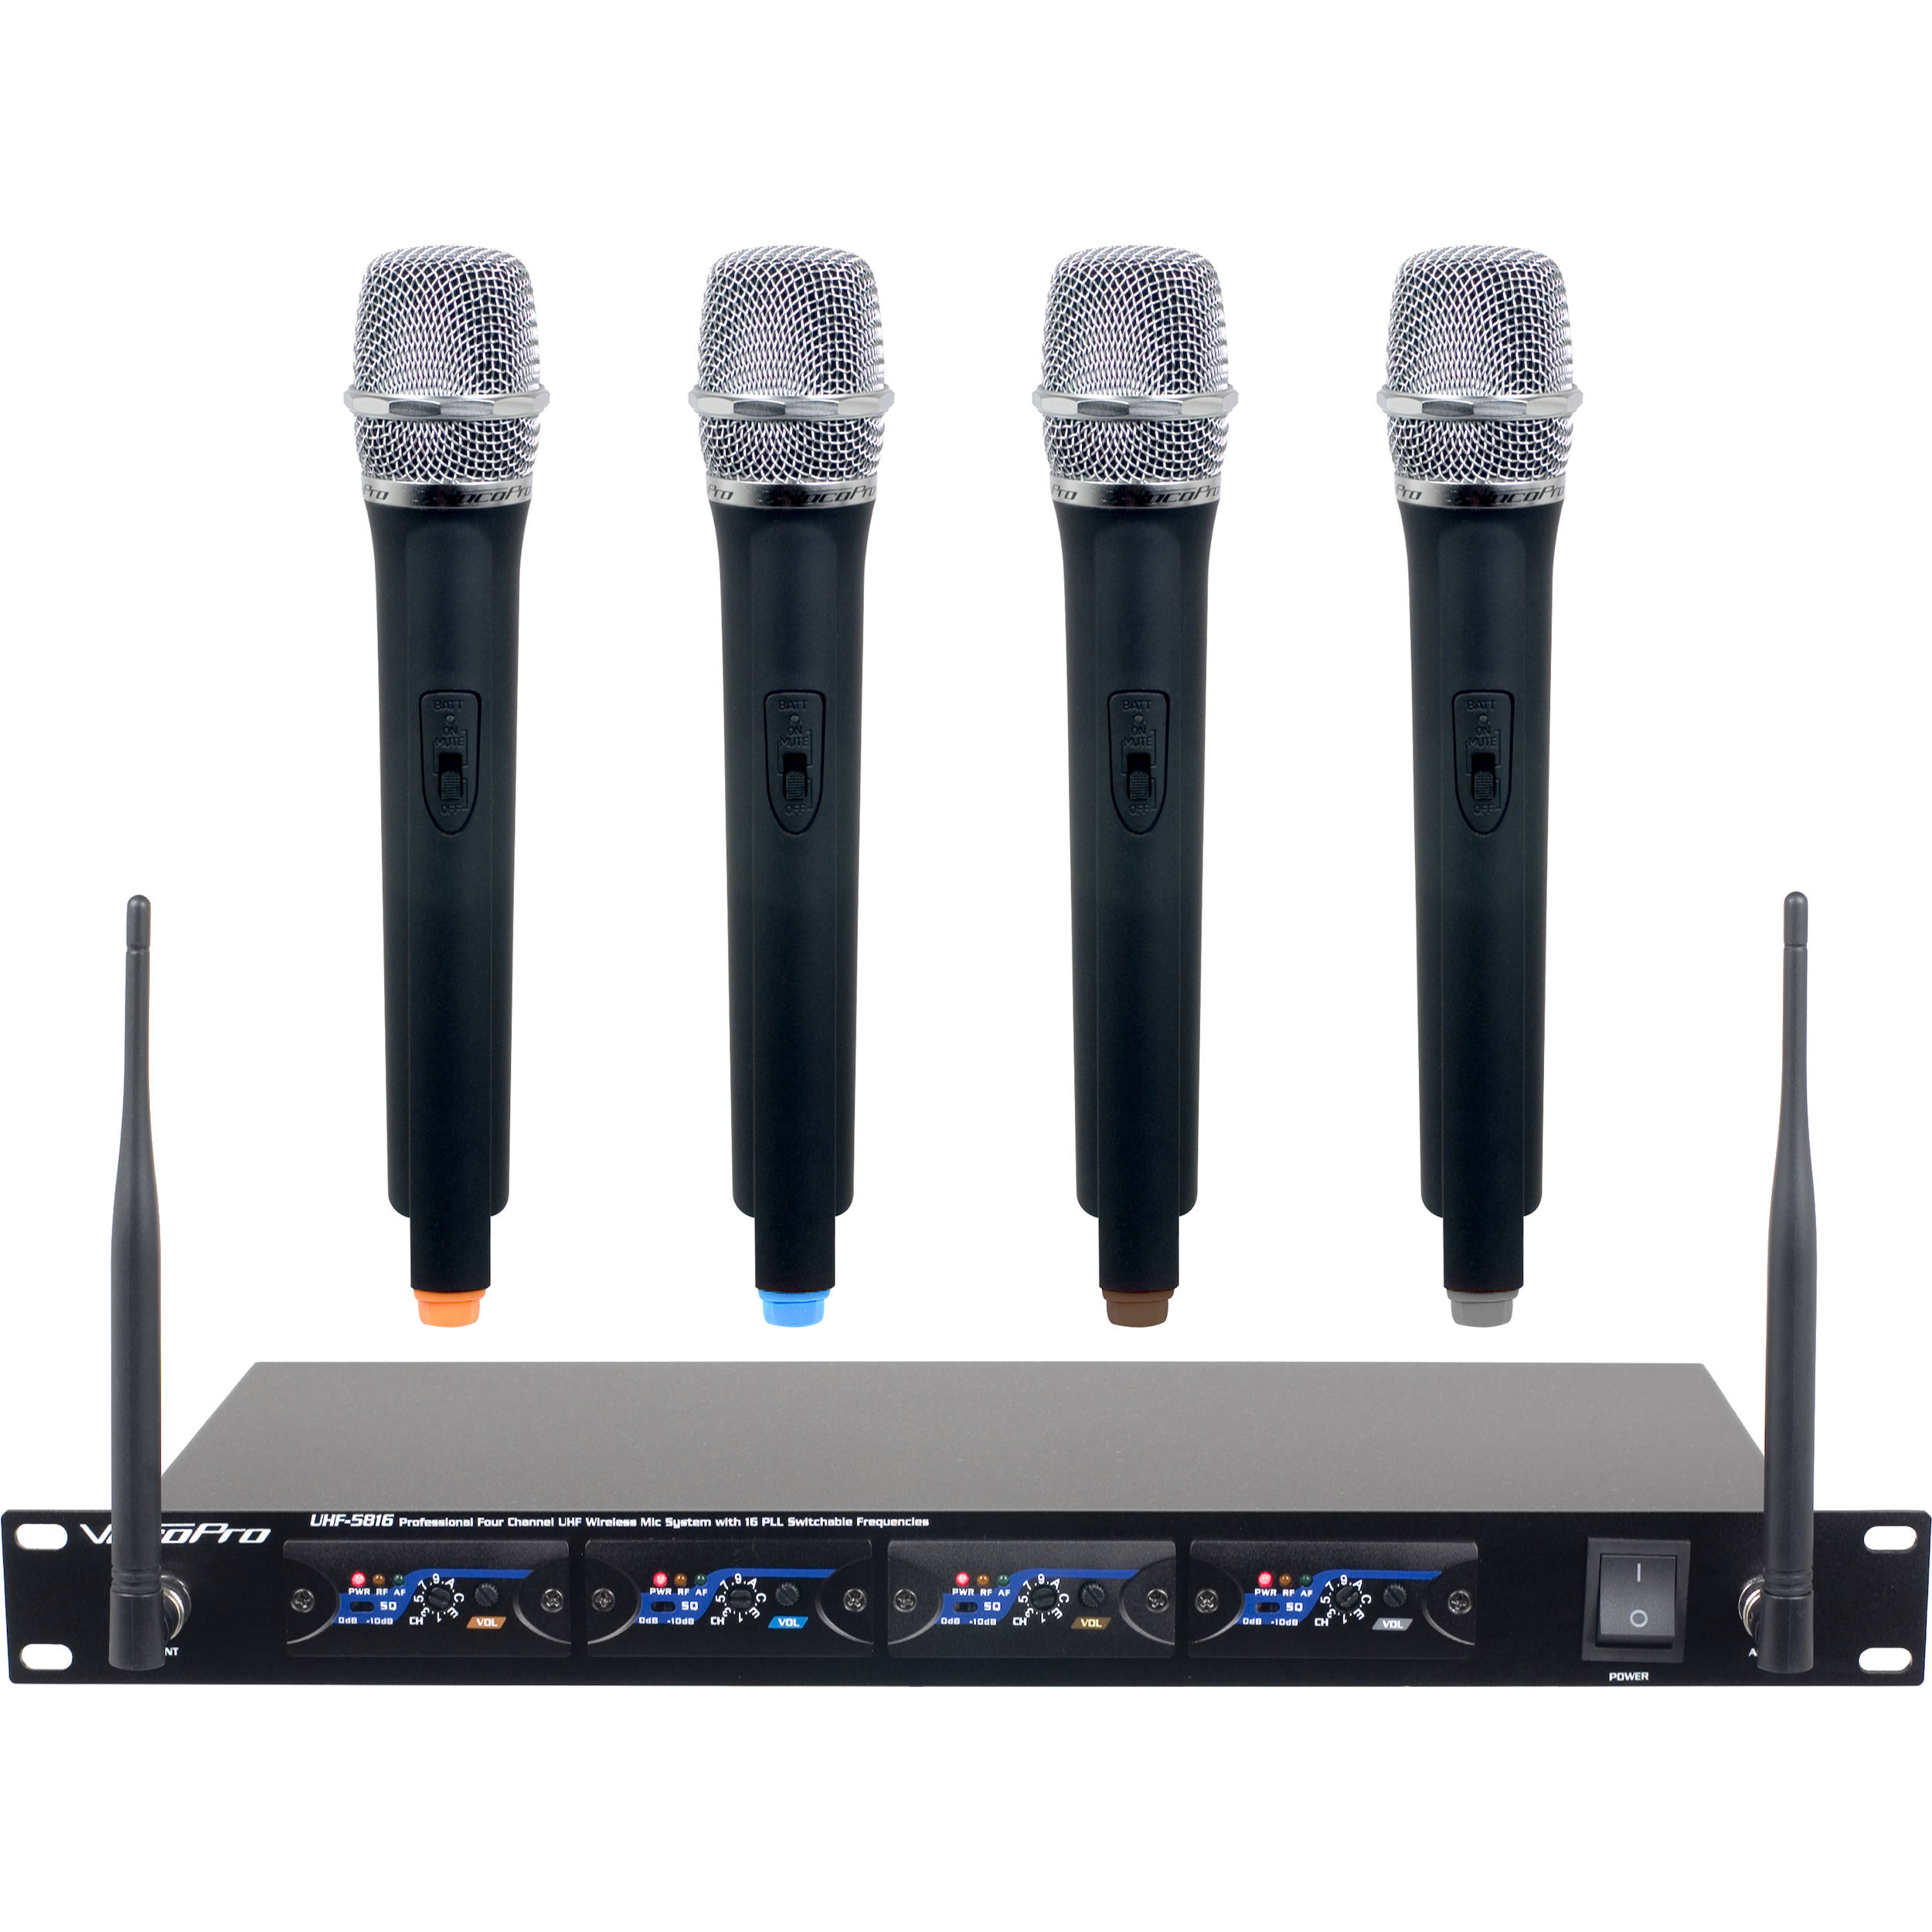 VocoPro UHF-5816-T1 4-Channel UHF Wireless Microphone System with Channel 1  Pre-Tuned